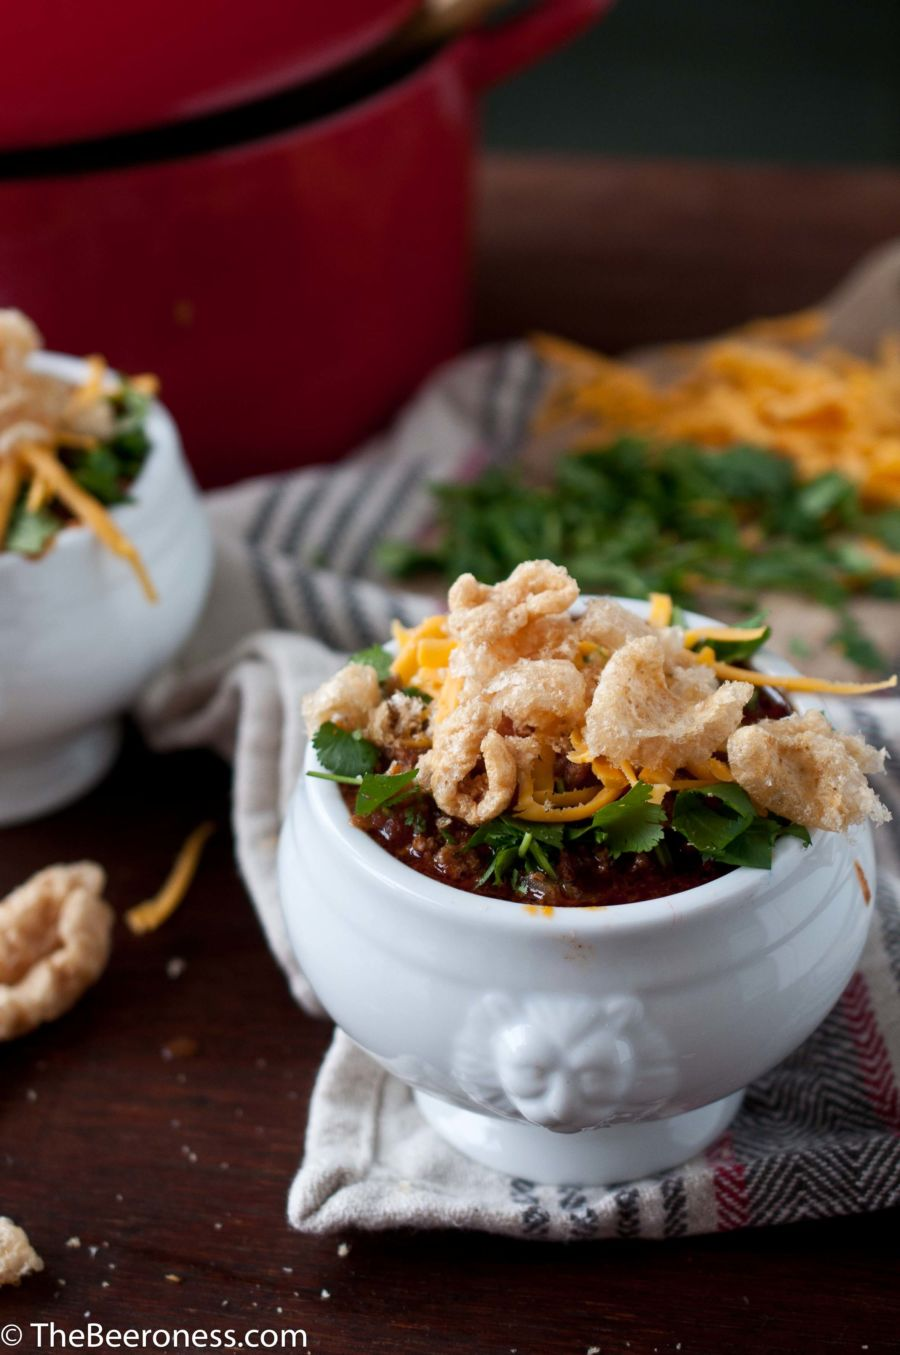 Chipotle Stout And Chorizo Chili with Pork RInds